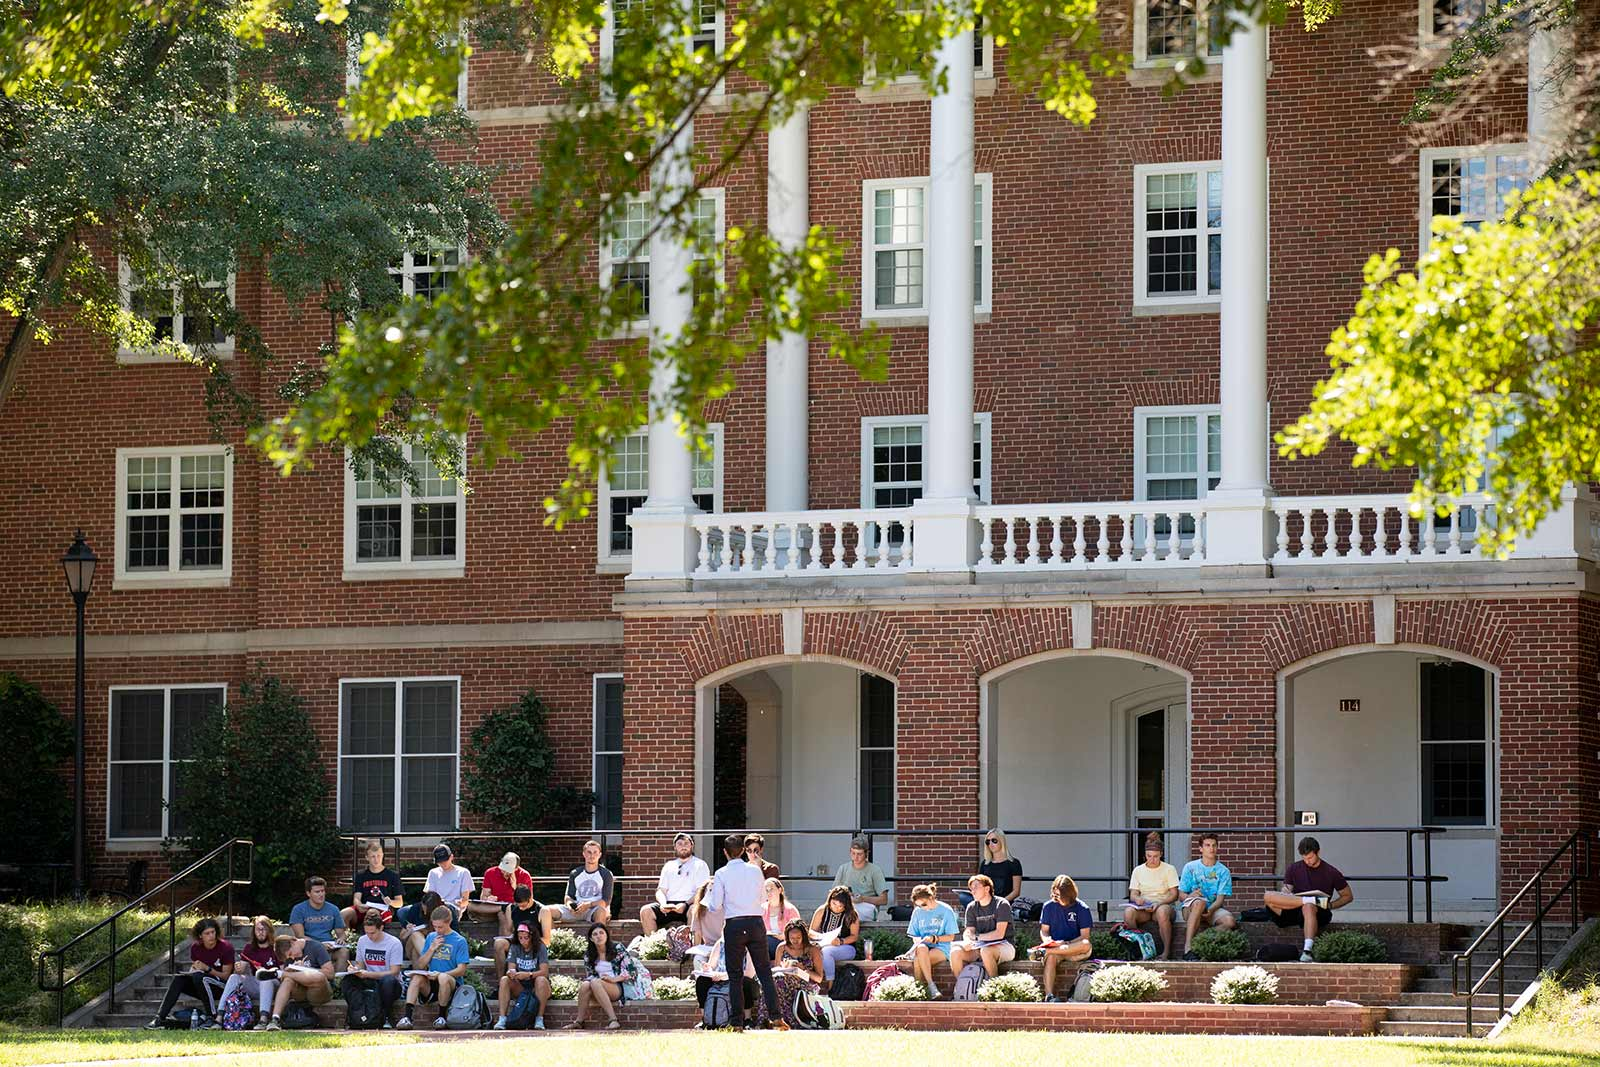 Few faculty members can resist holding classes outside under the giant oaks during perfect spring and fall days.